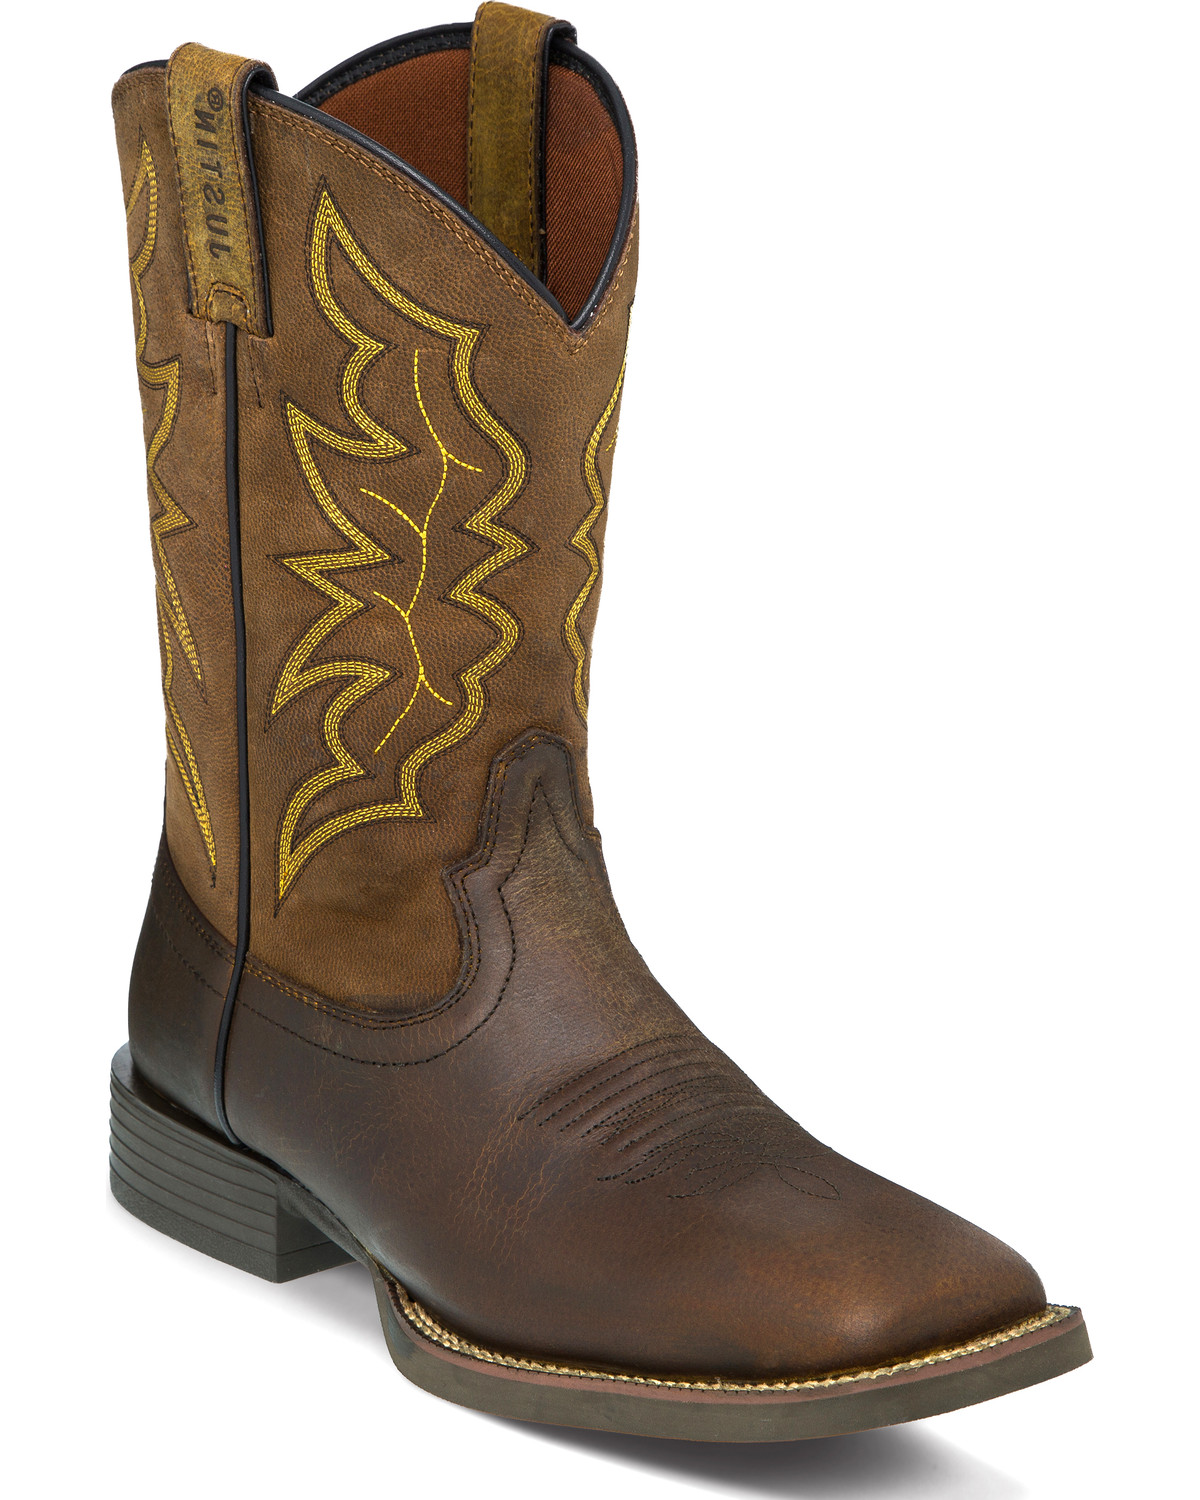 Justin Men S Chet Brown Stampede Cowboy Boots Square Toe Country Outfitter